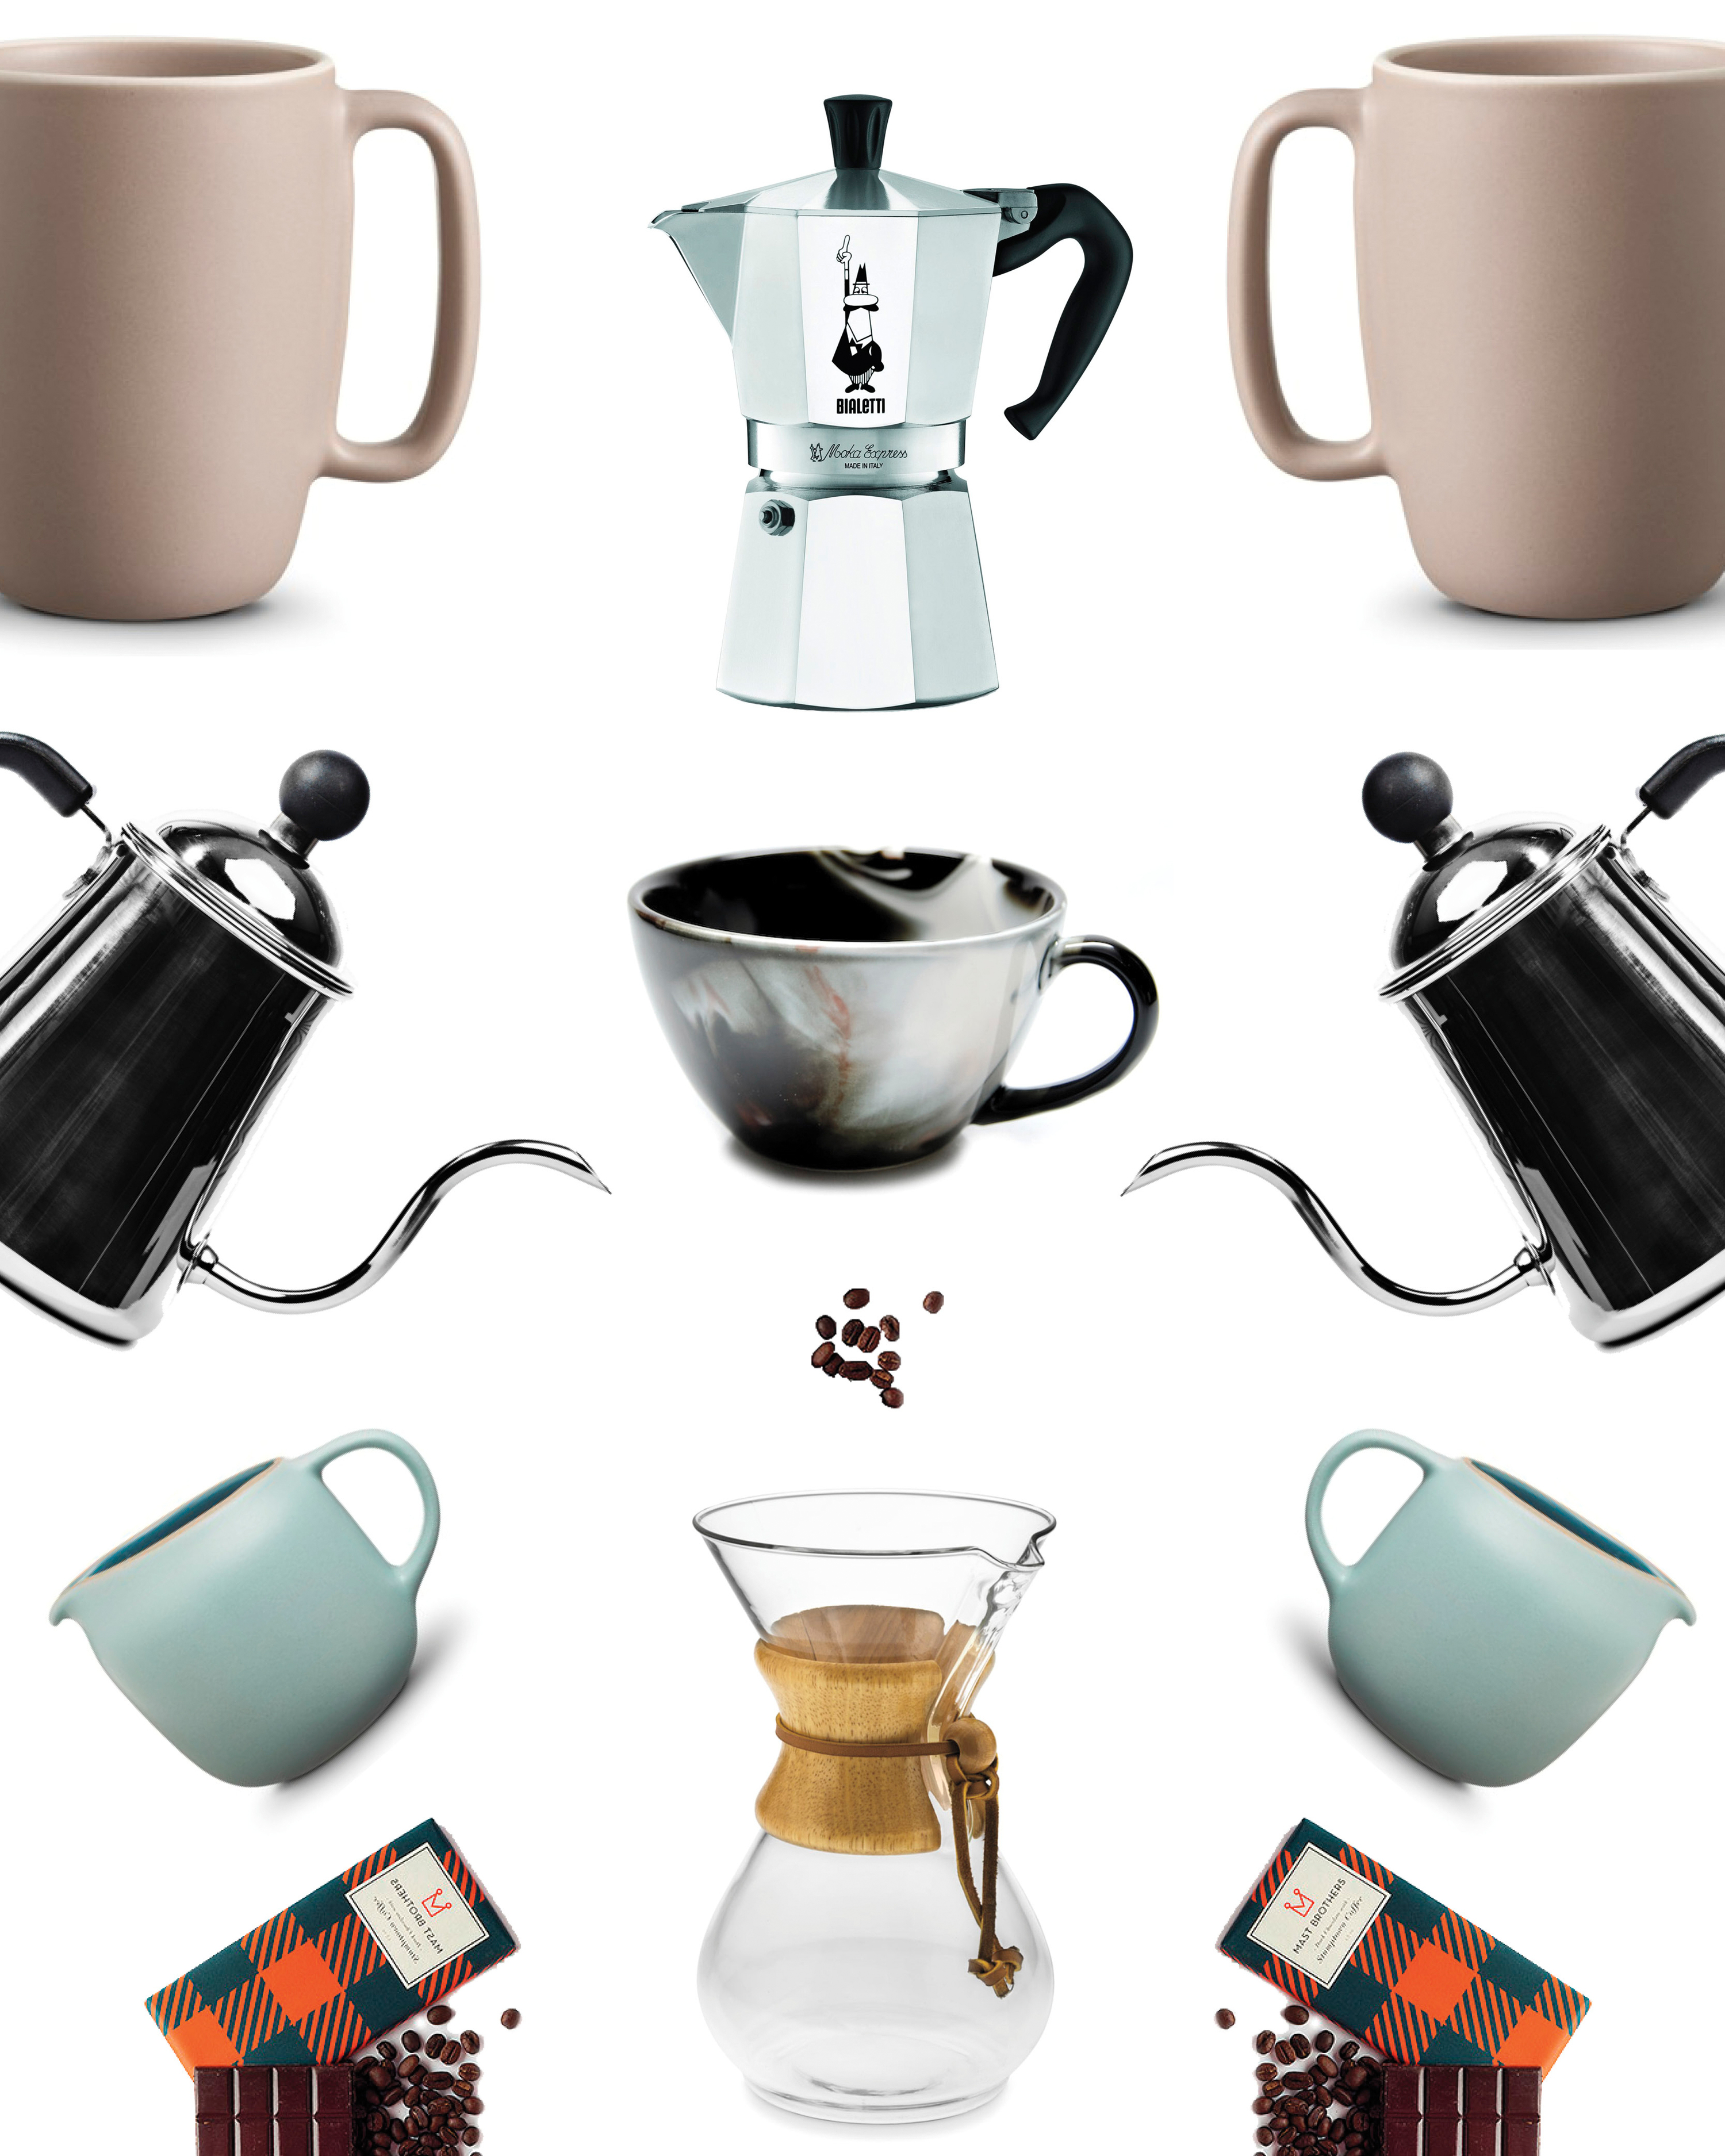 22 Wedding Gift Ideas for Coffee Lovers